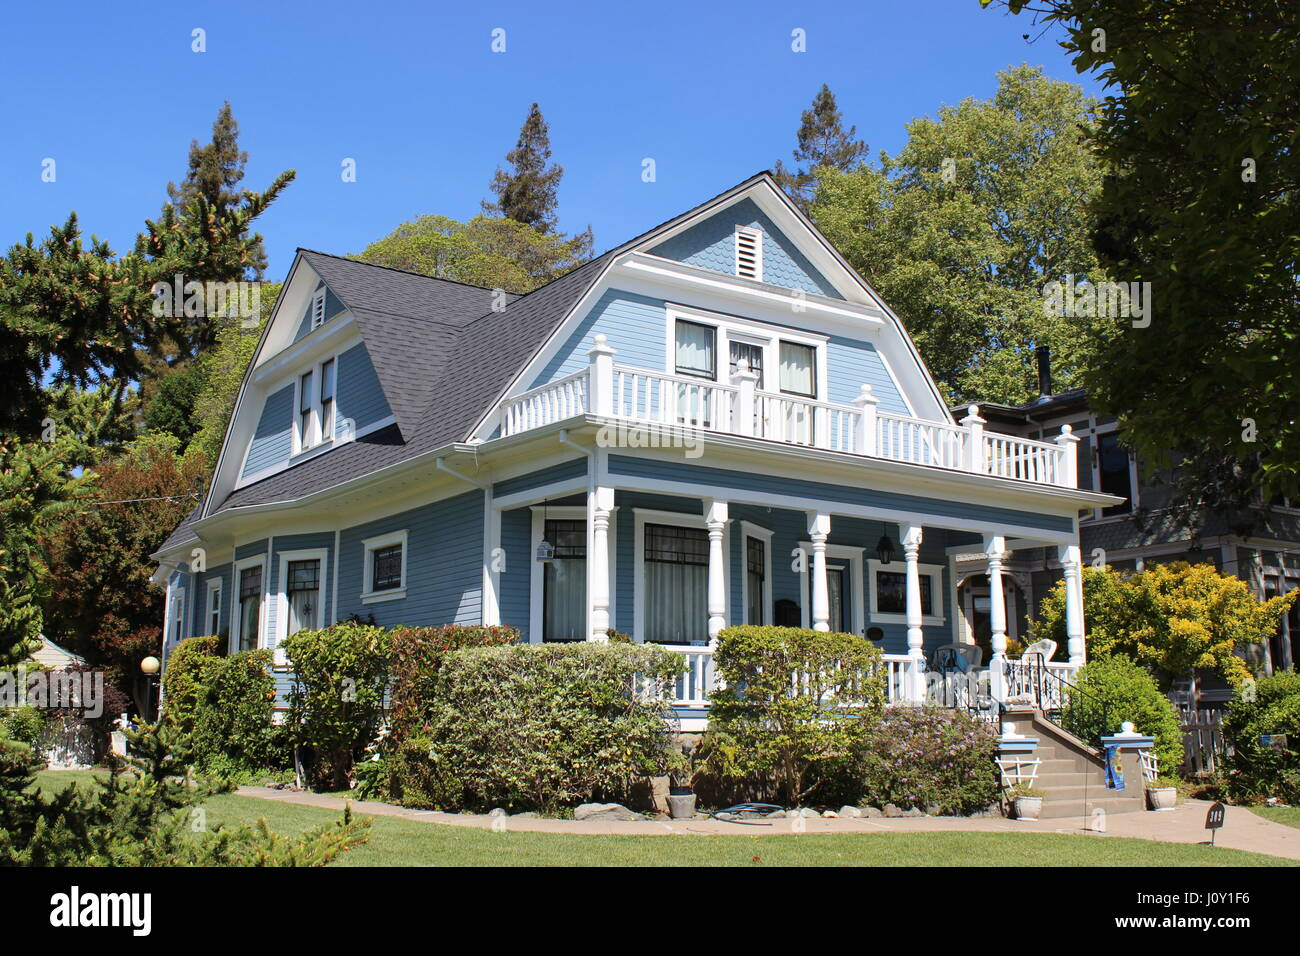 Dutch Colonial Revival House Built In 1908 In Napa California Stock